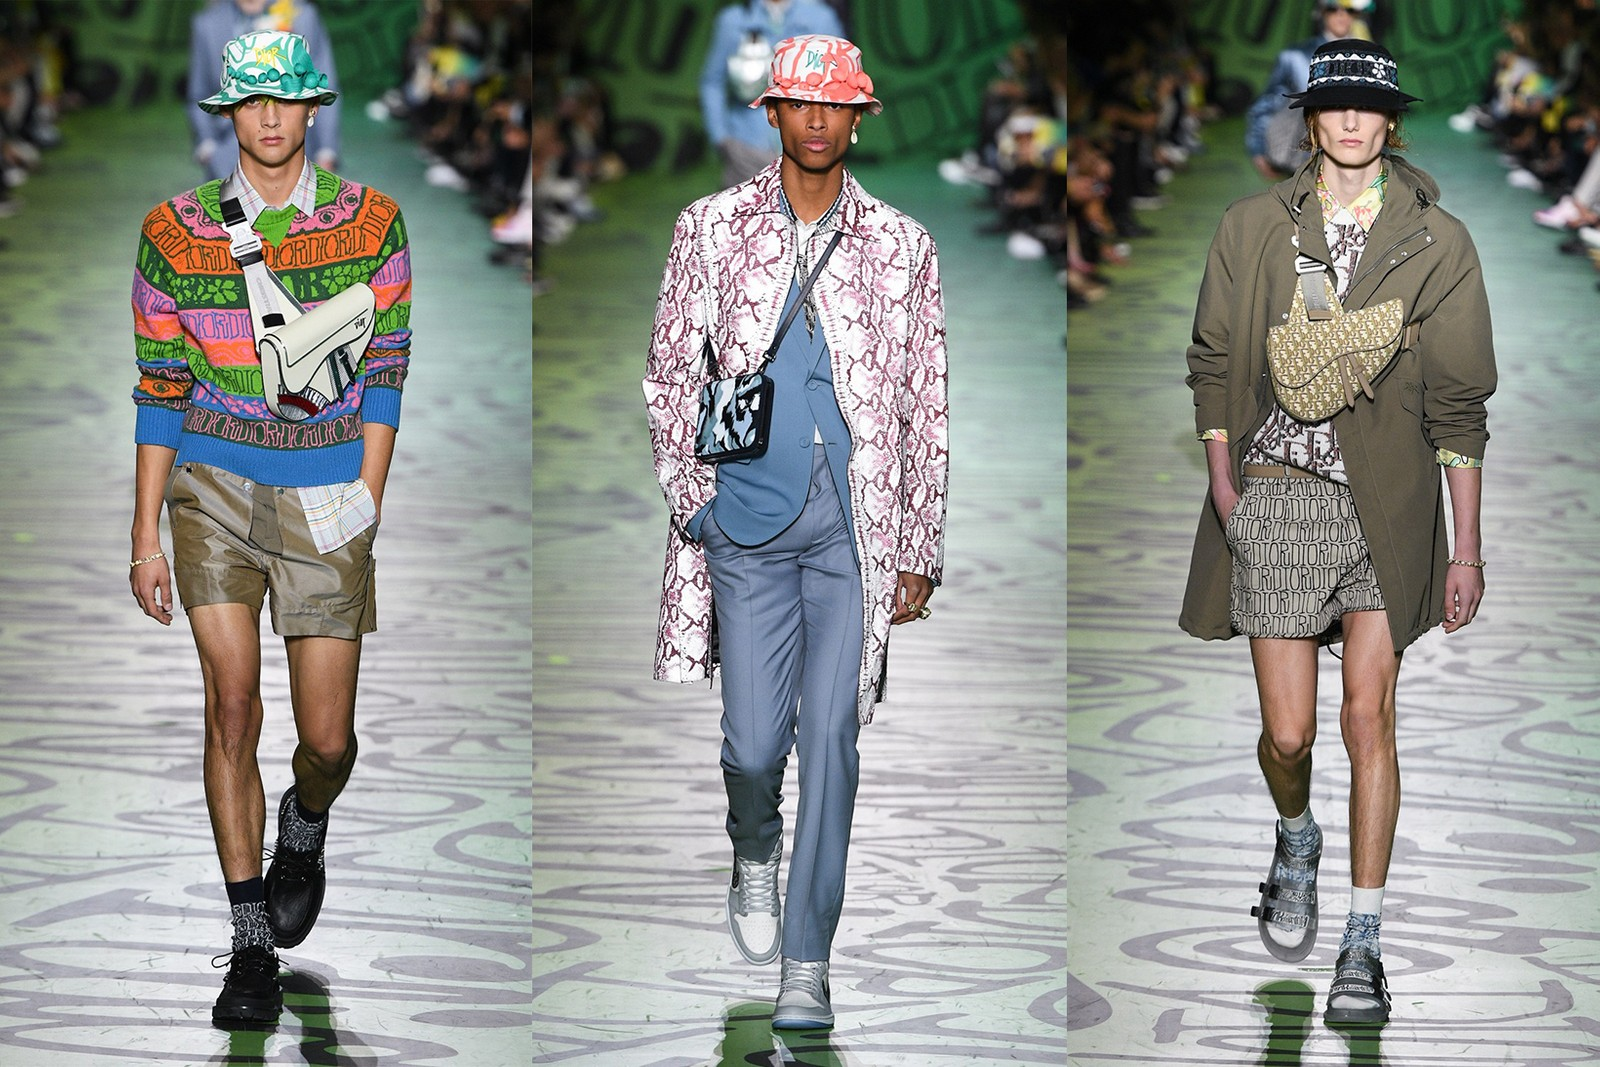 dior men pre fall 2020 stussy collaboration runway fashion jackets saddle bags bucket hats